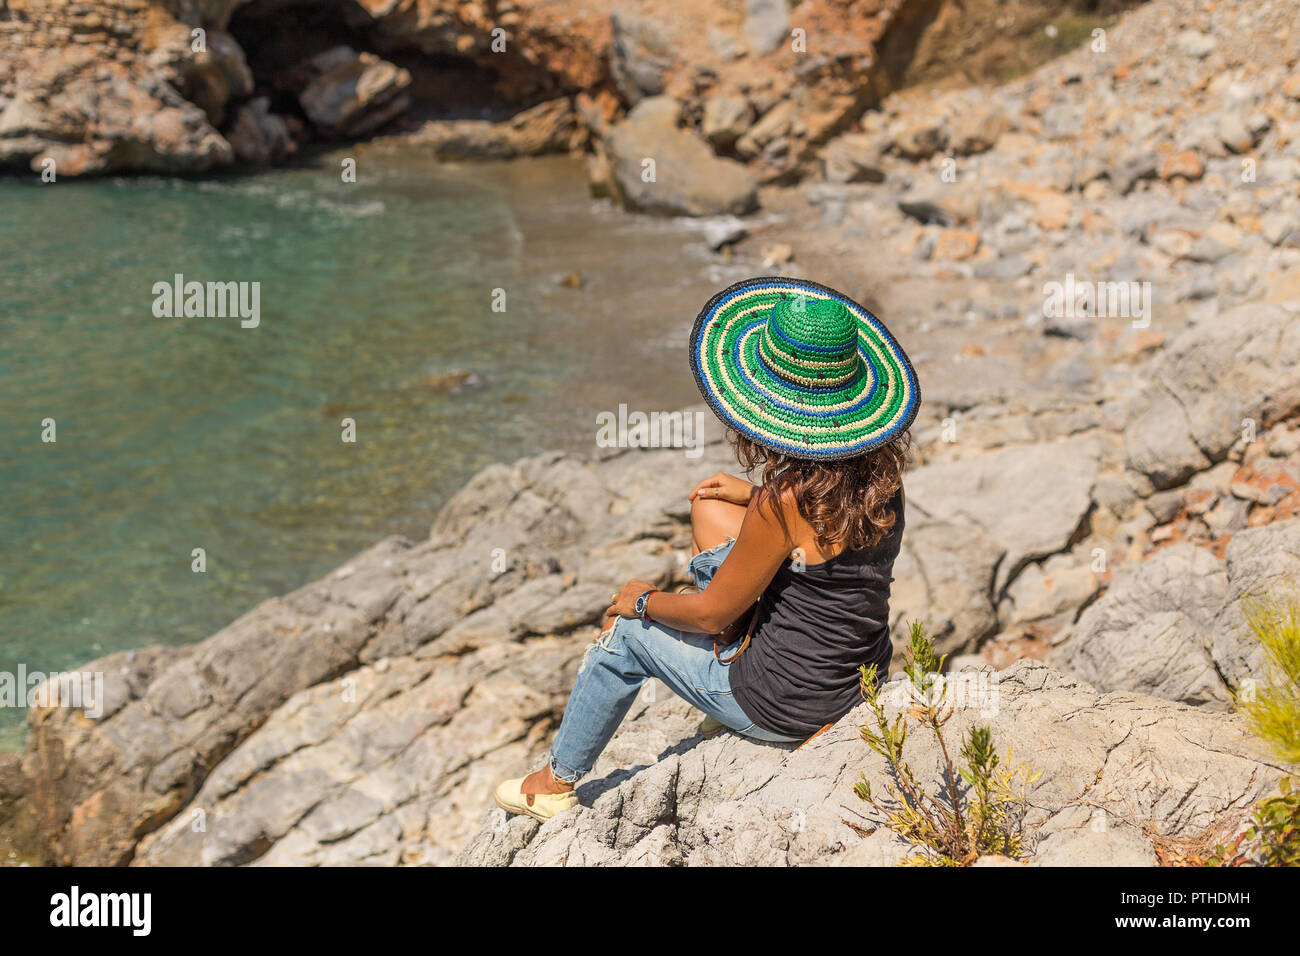 Backview portrait of a solo traveller female wearing green and blue striped hat, black t-shirt and jeans, sitting at the rocks looking at beautiful ba - Stock Image